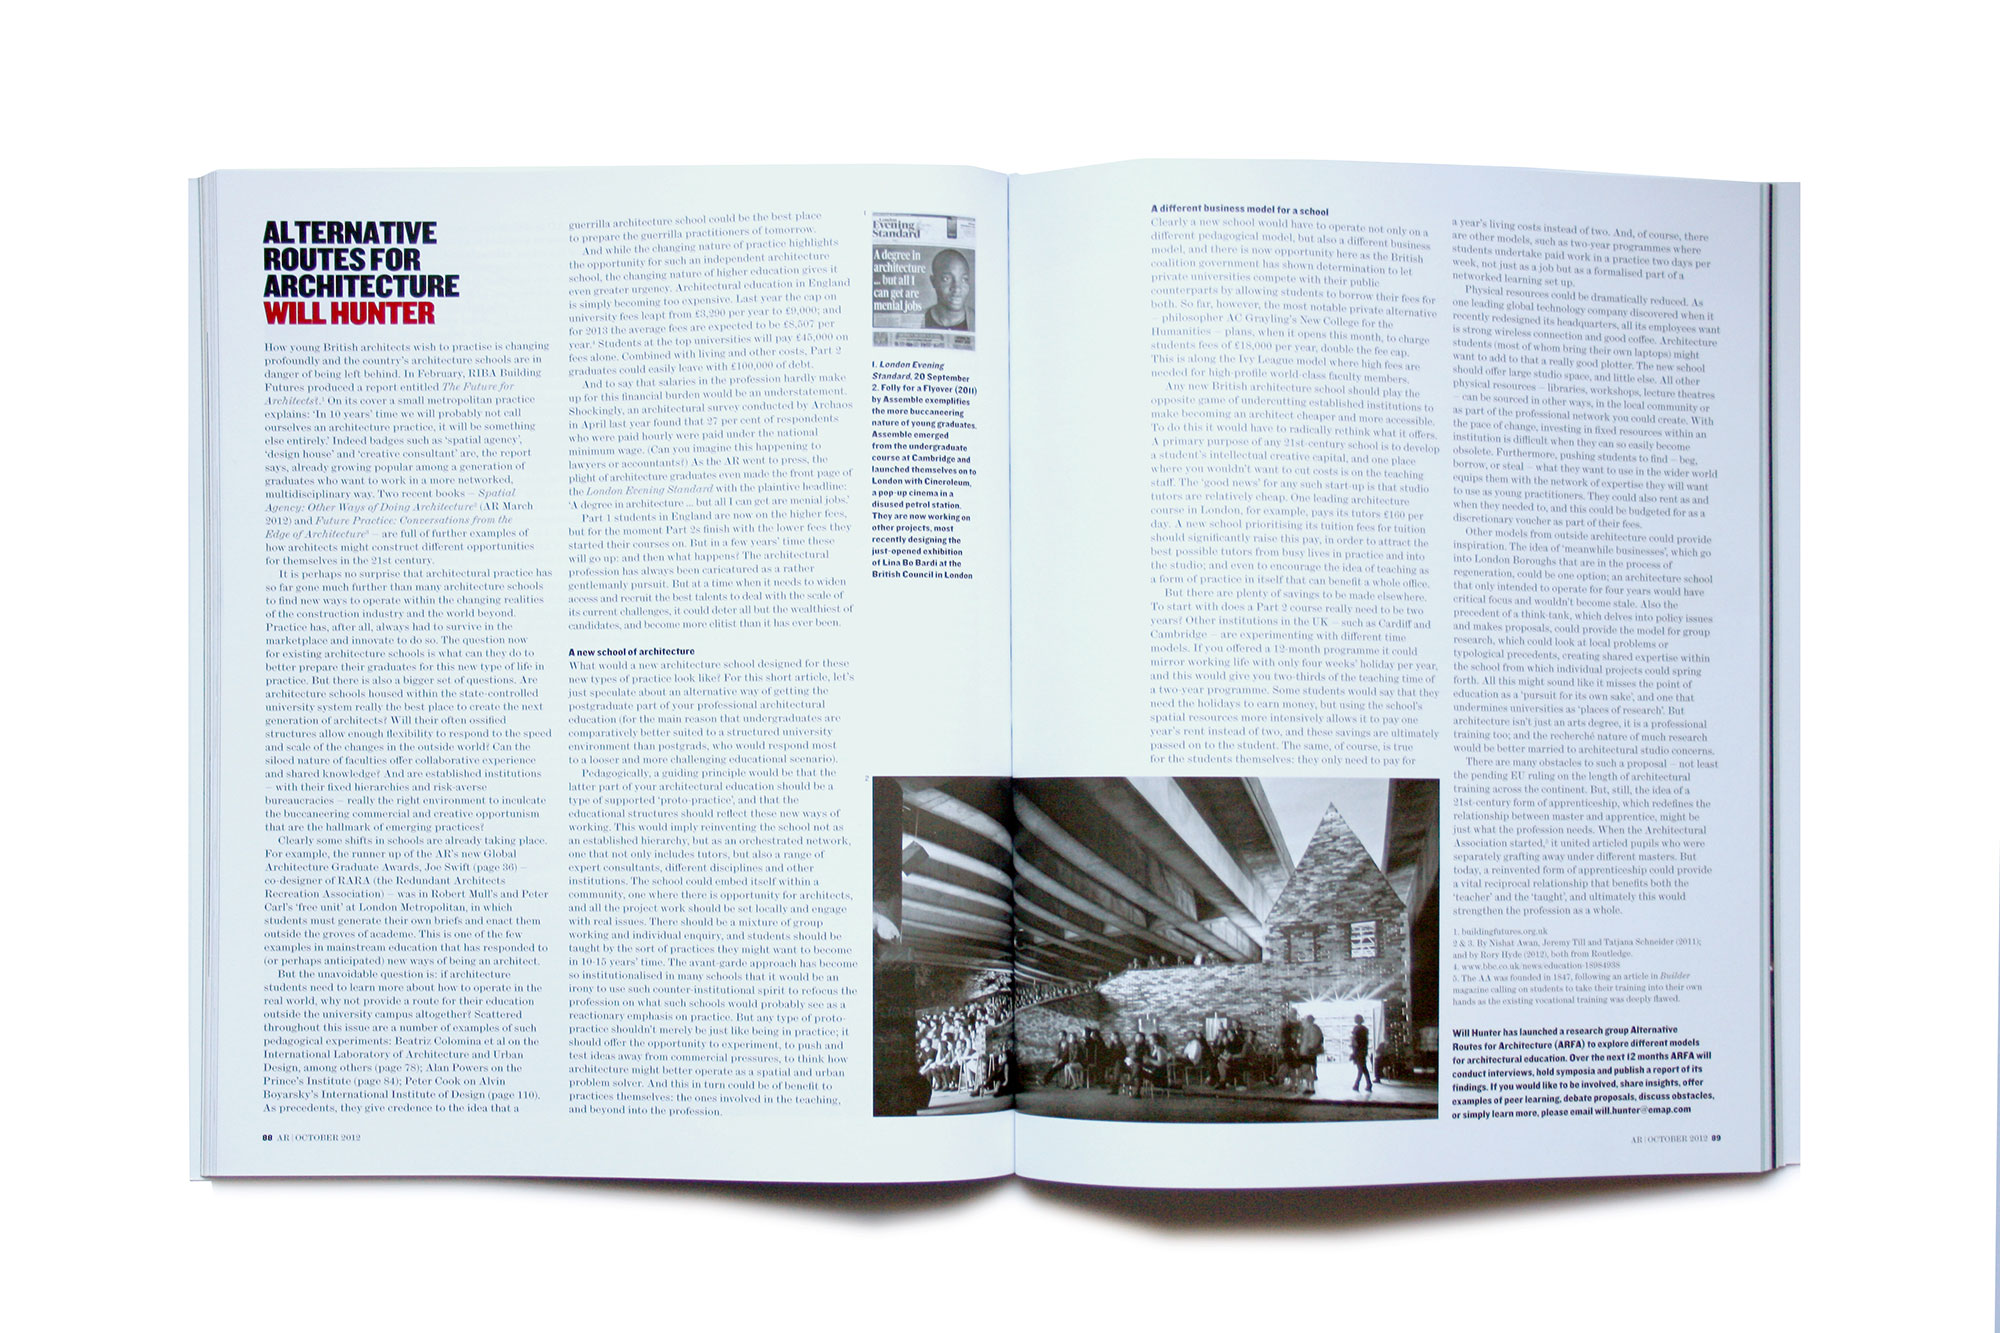 Fig. 3. Published in The Architectural Review in October 2012, Alternative Routes for Architecture launched the ARFA think tank.